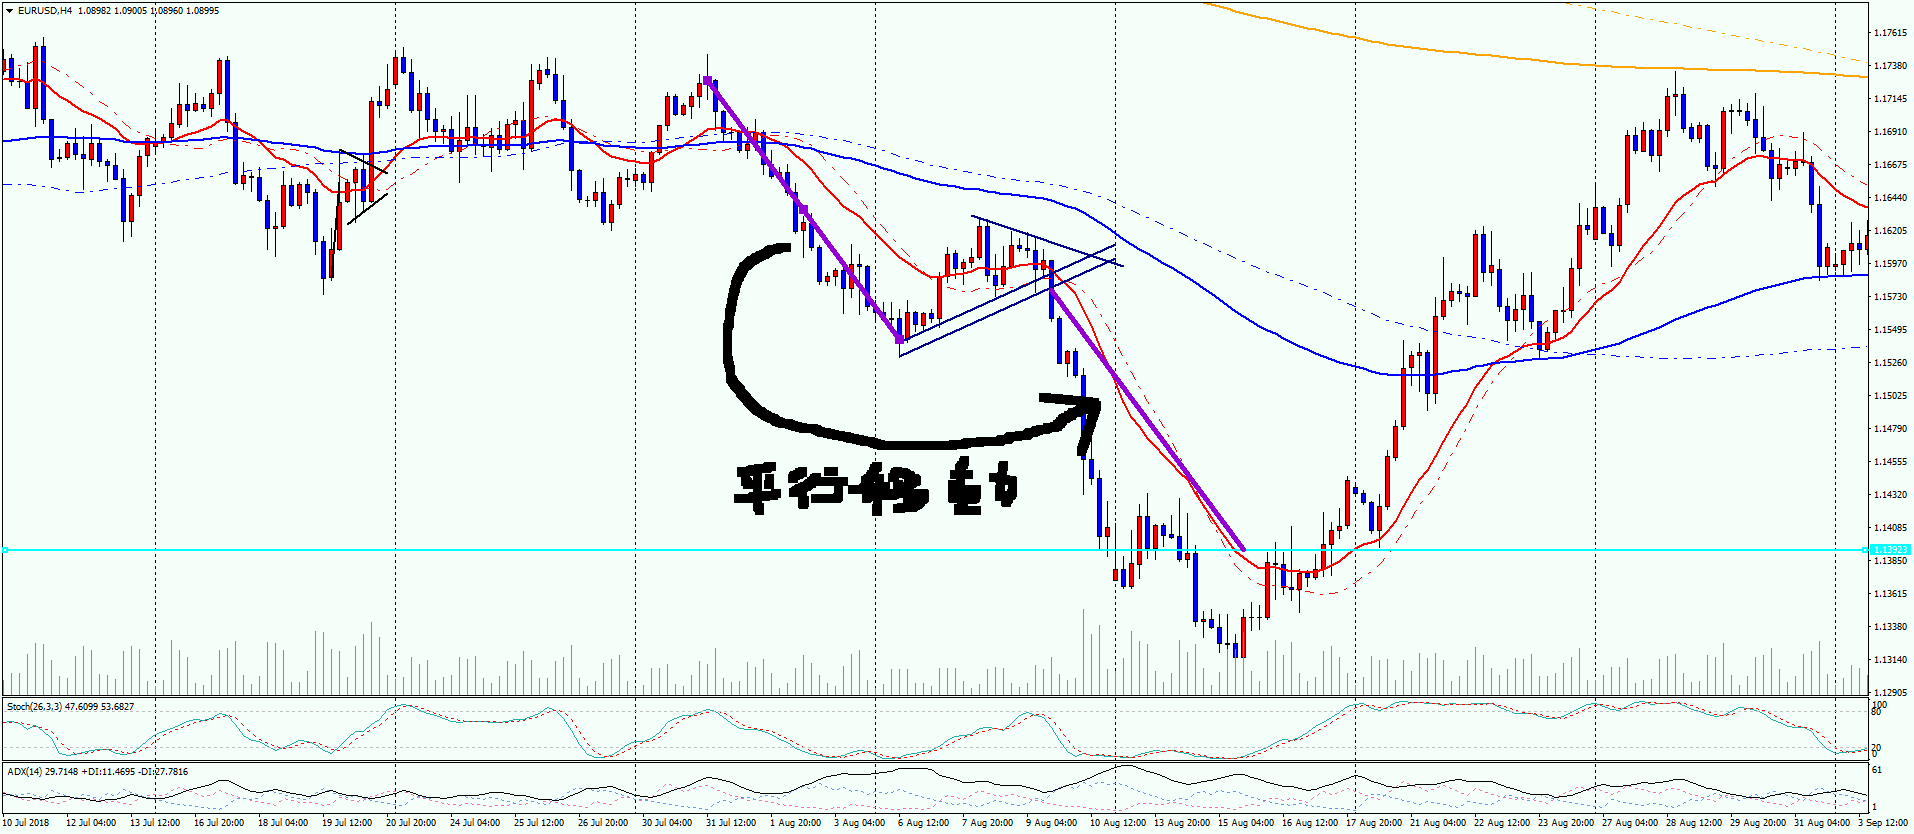 eurusd-pricerangeobservation